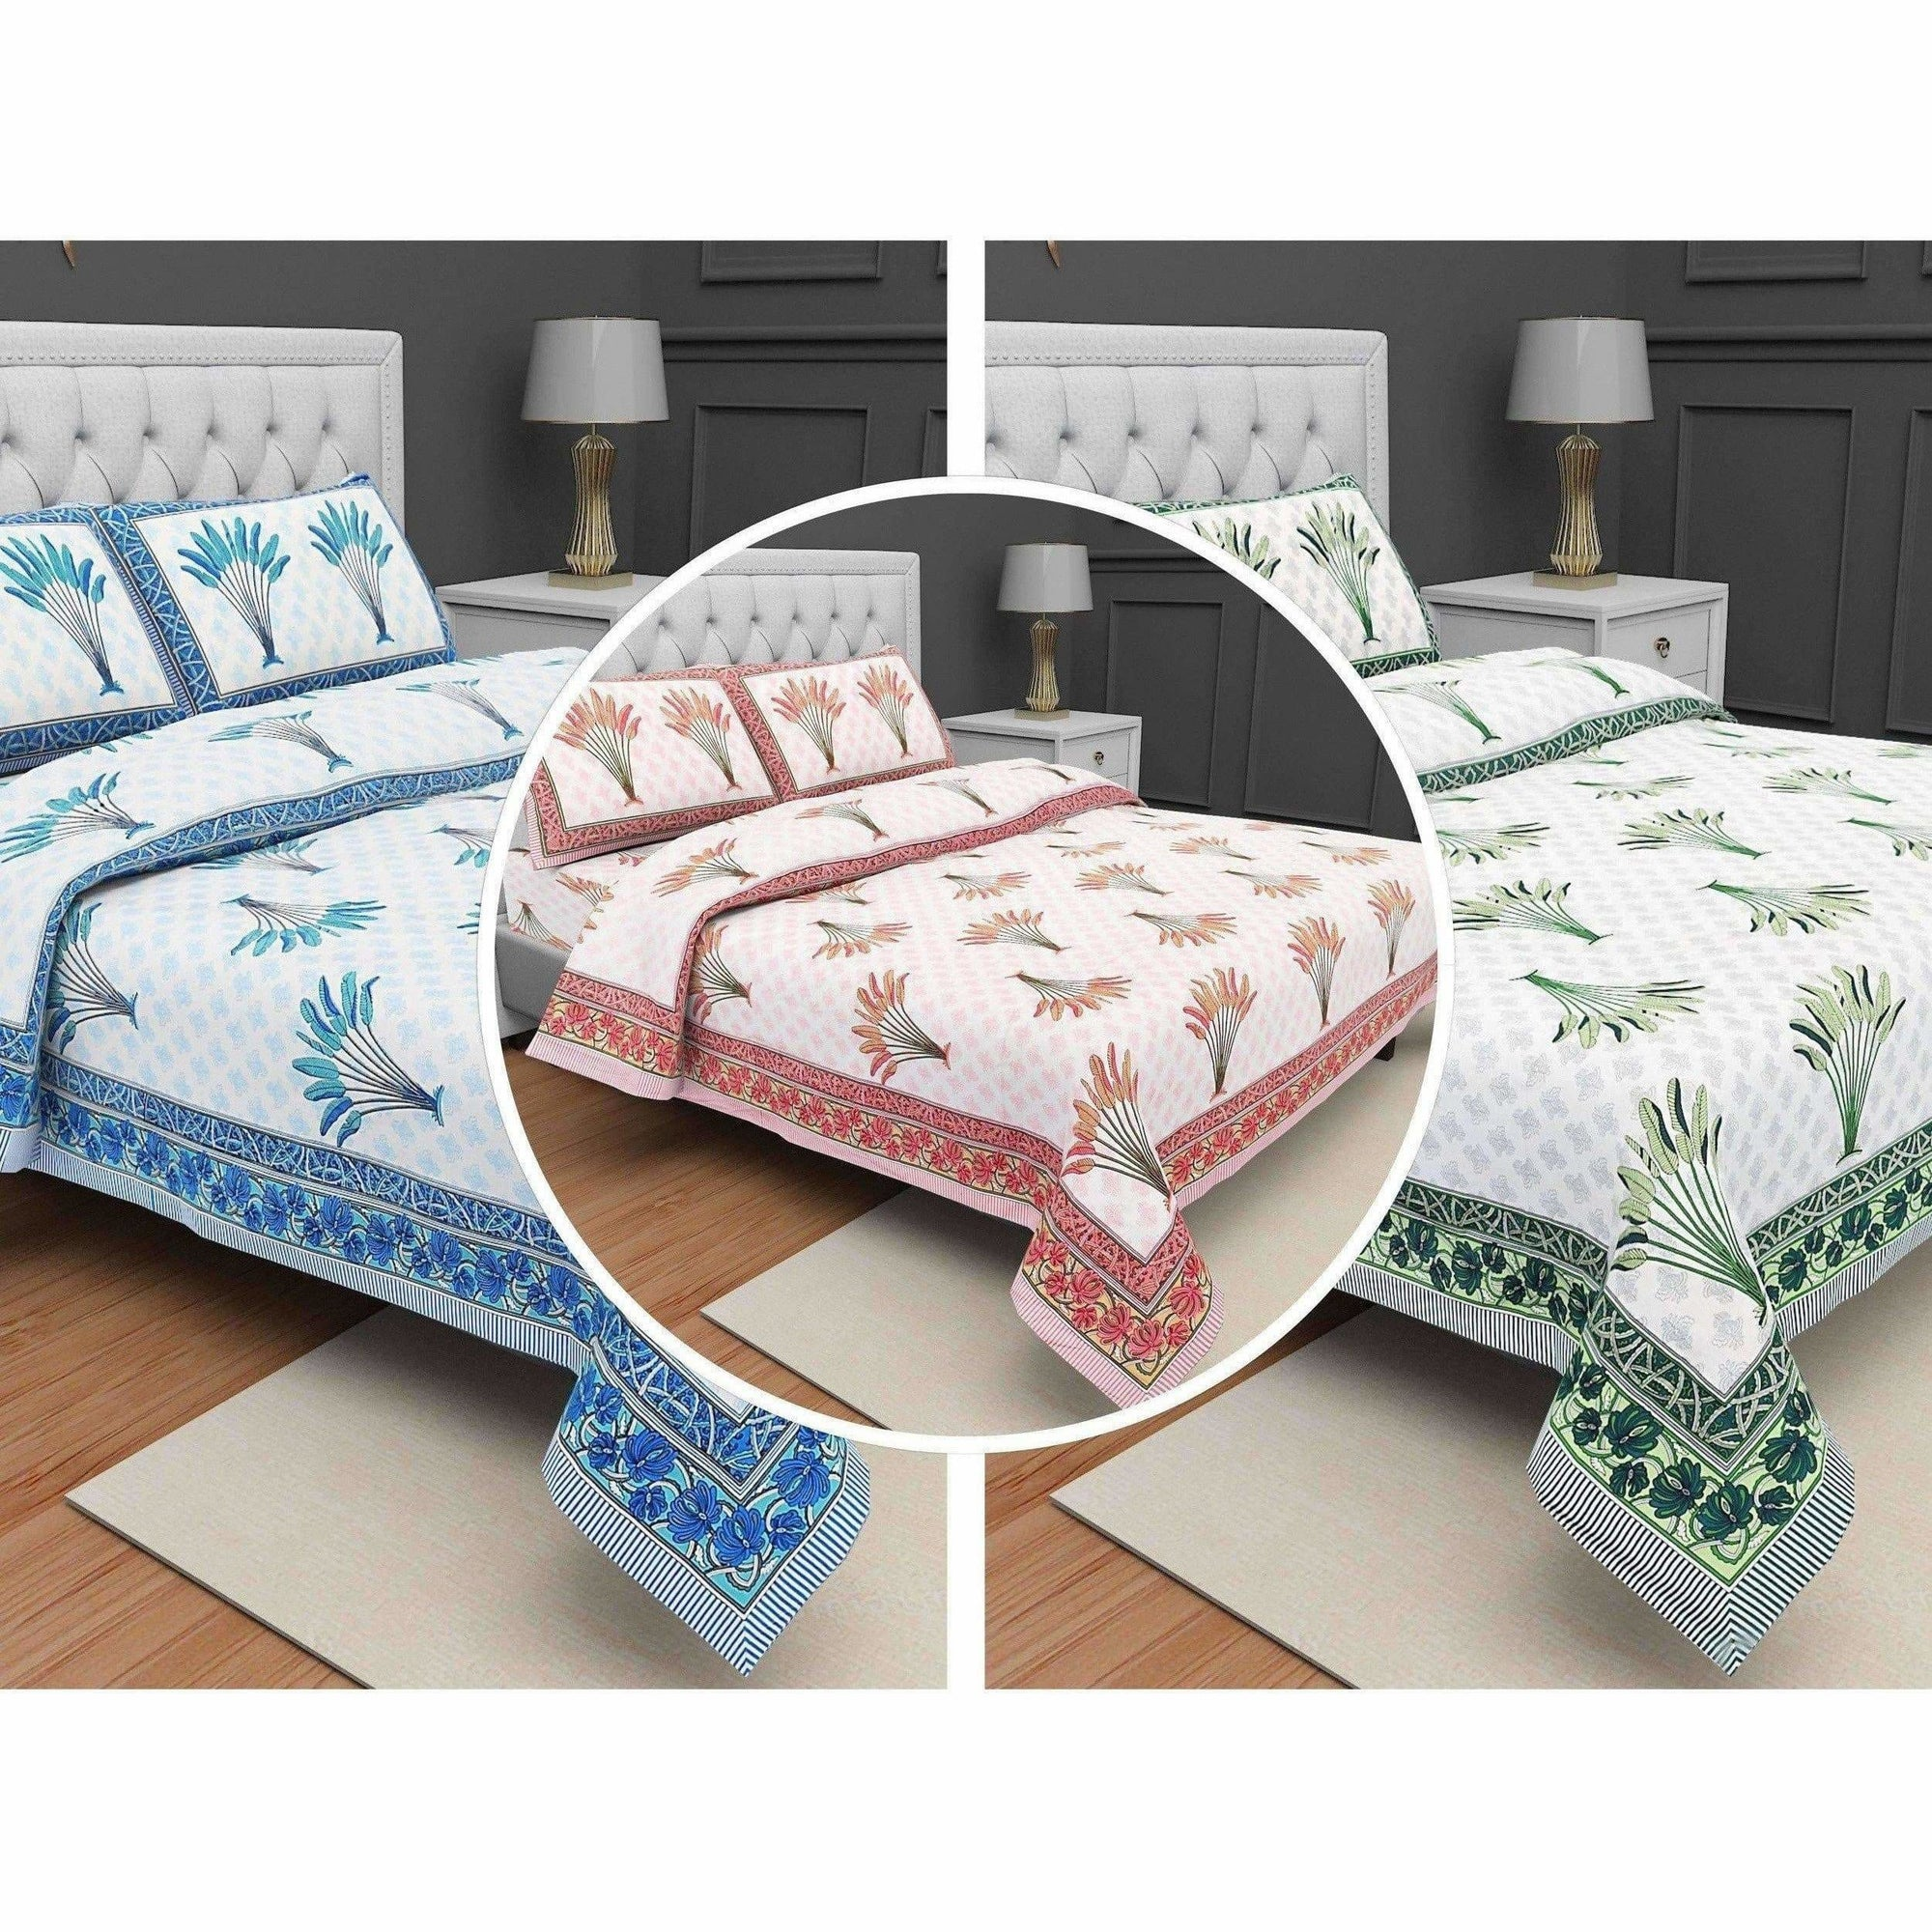 Jaipuri Hand Block Printed Traditional 144TC Cotton Double/Queen Bedsheet with 2 Pillow Covers